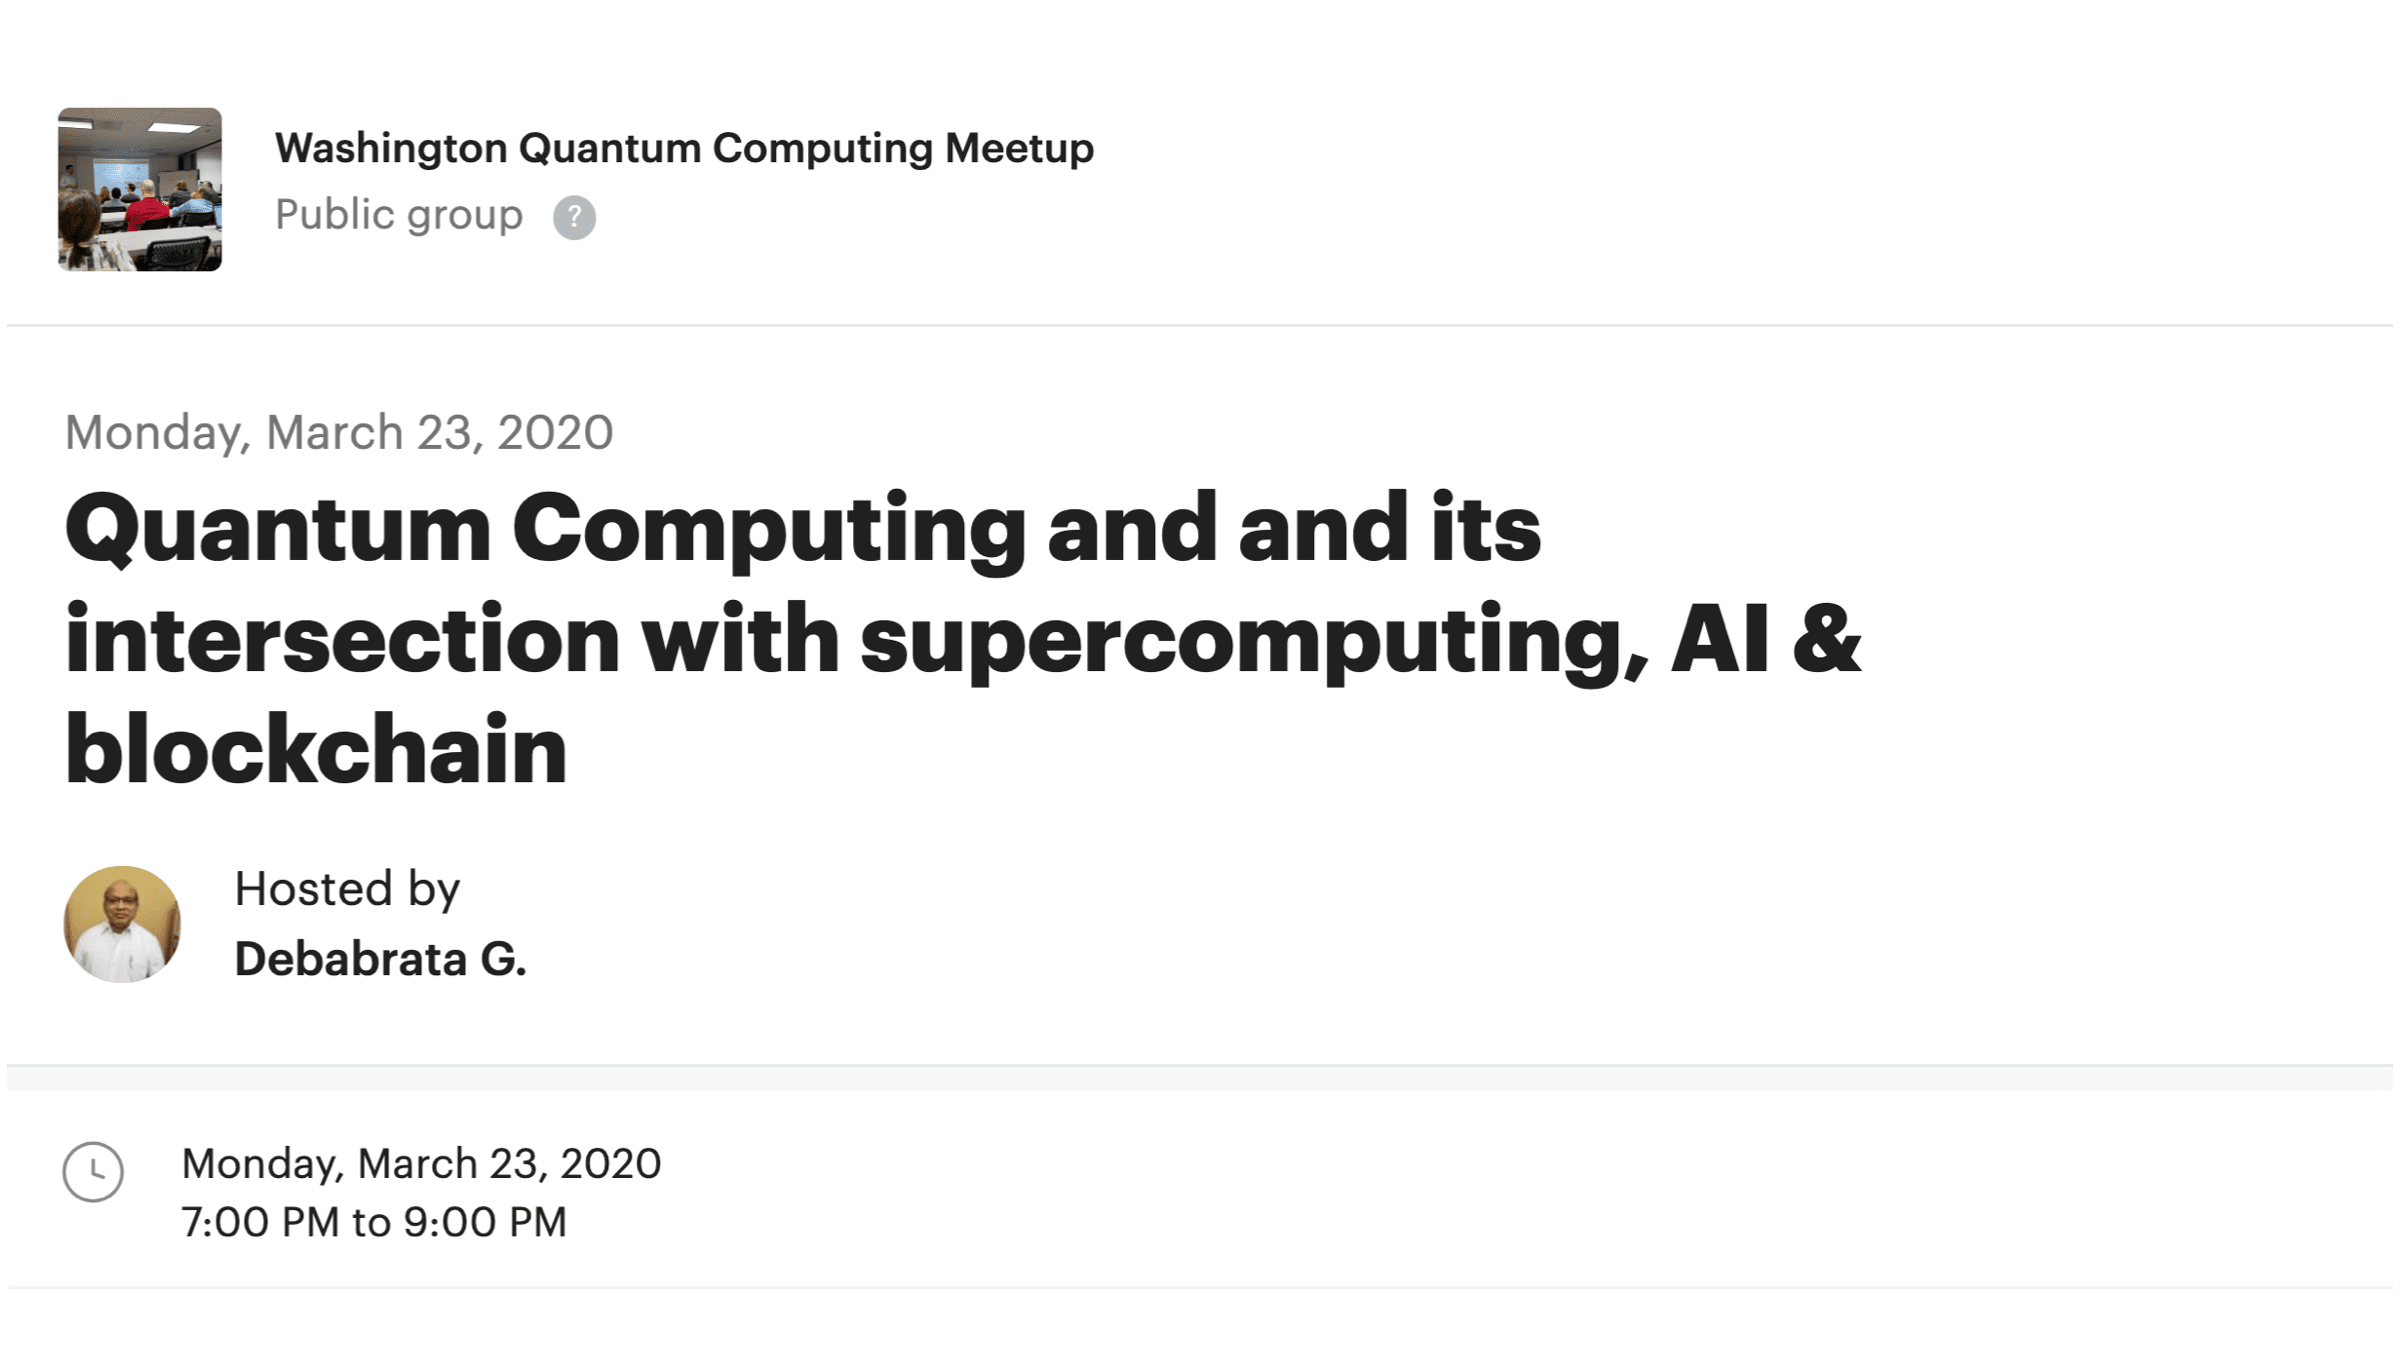 Washington-Quantum-Computing-Meetup-20200323-i